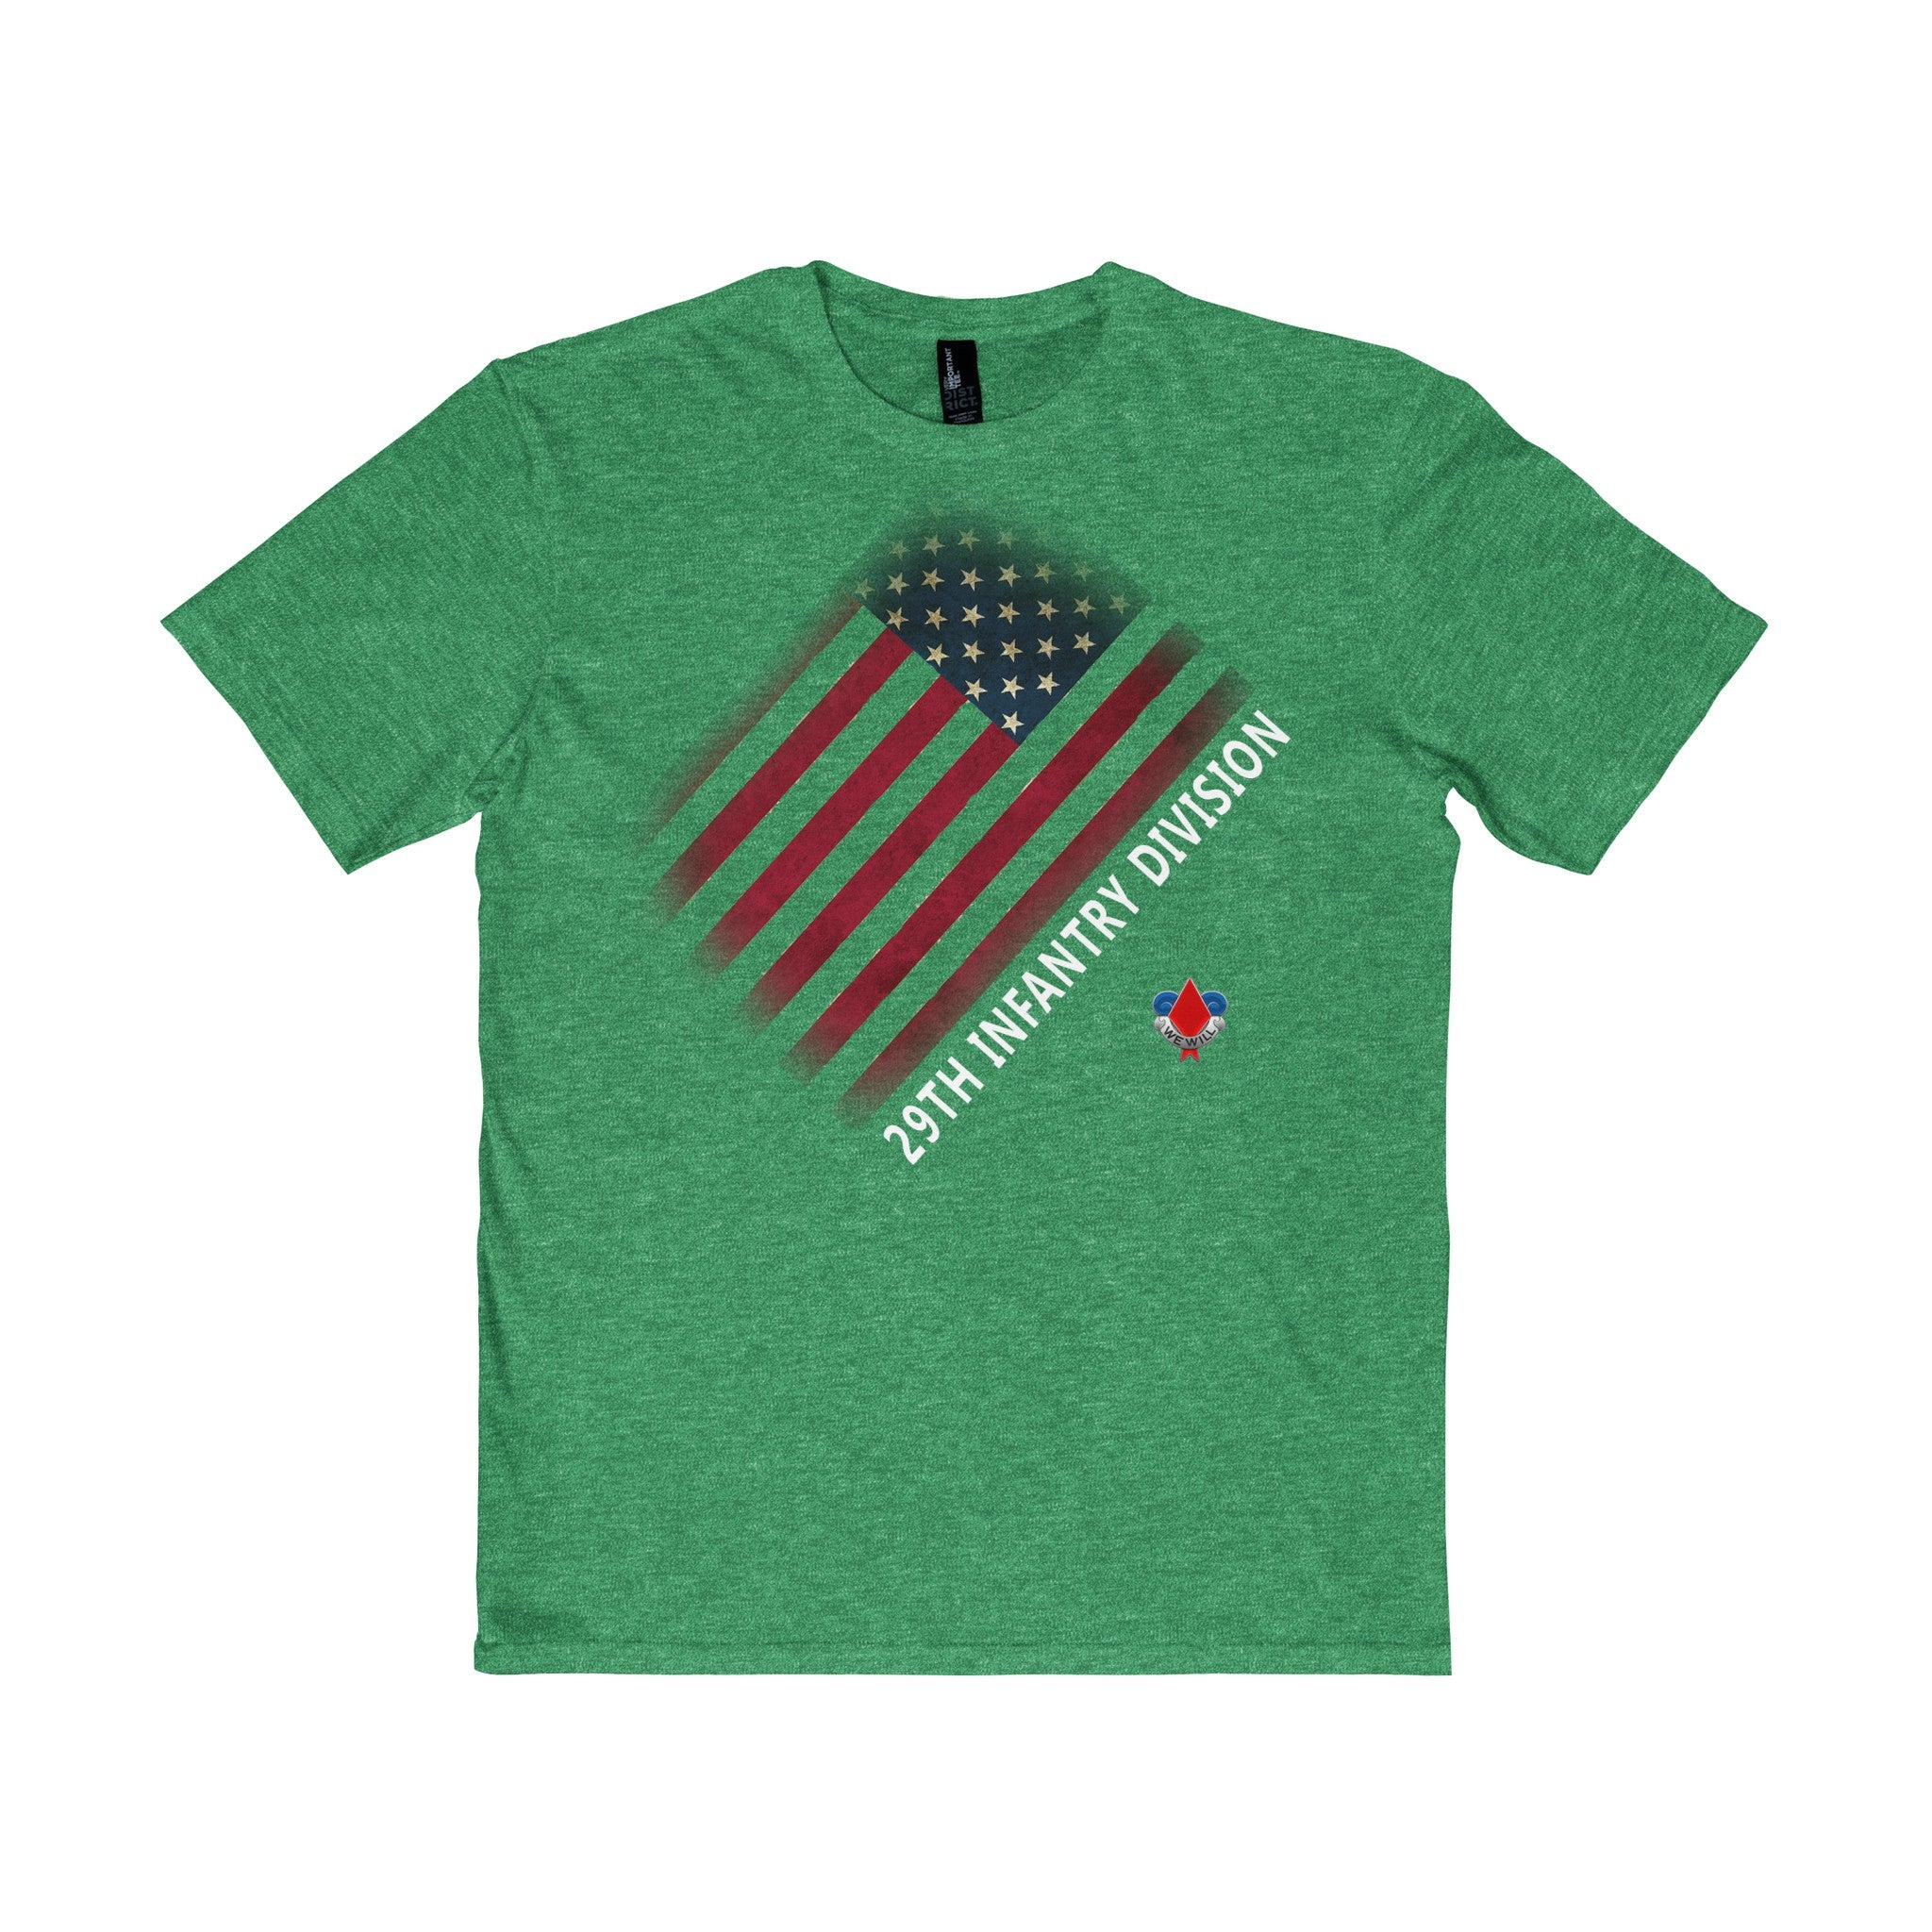 29th Infantry Division- Limited Edition- Shirt Get It  today- I know you have some one who will love it - or even yourself - it only takes a minute to buy it